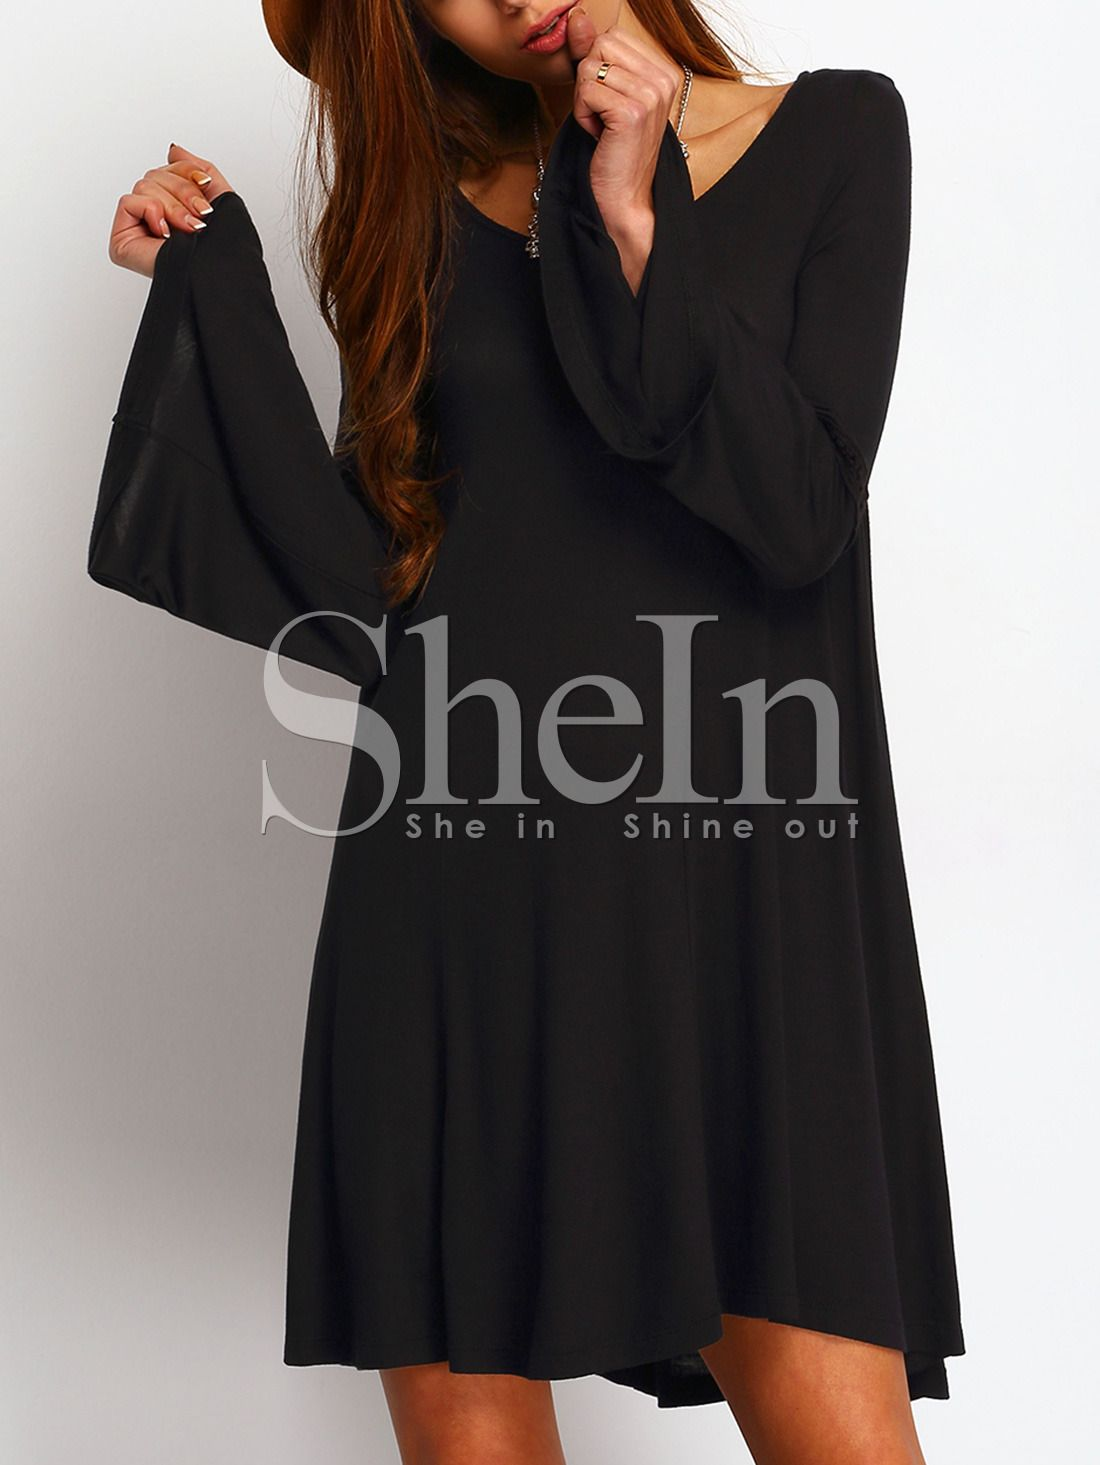 a6ed74b1847 Shop Black Scoop Neck Bell Sleeve Swing Dress online. SheIn offers Black  Scoop Neck Bell Sleeve Swing Dress   more to fit your fashionable needs.